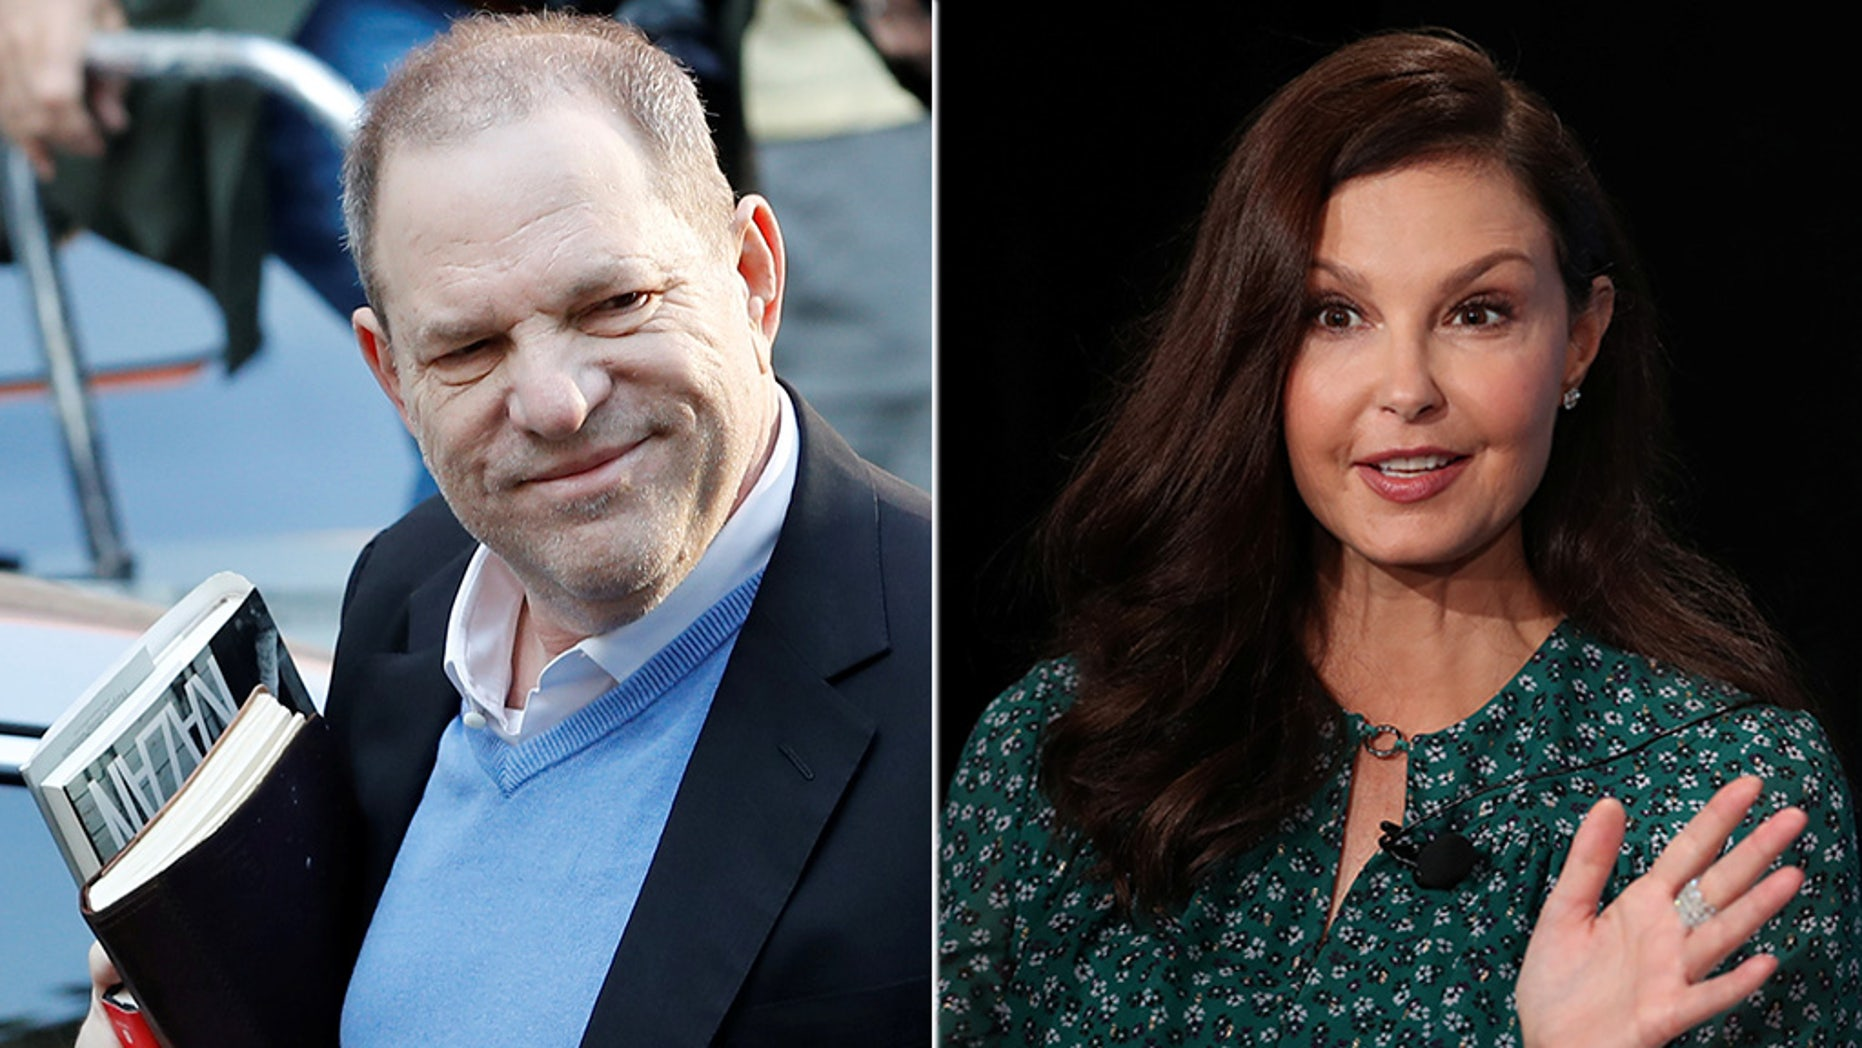 Ashley Judd's sexual harassment claim against disgraced Hollywood producer Harvey Weinstein was dismissed by a federal judge on Wednesday.